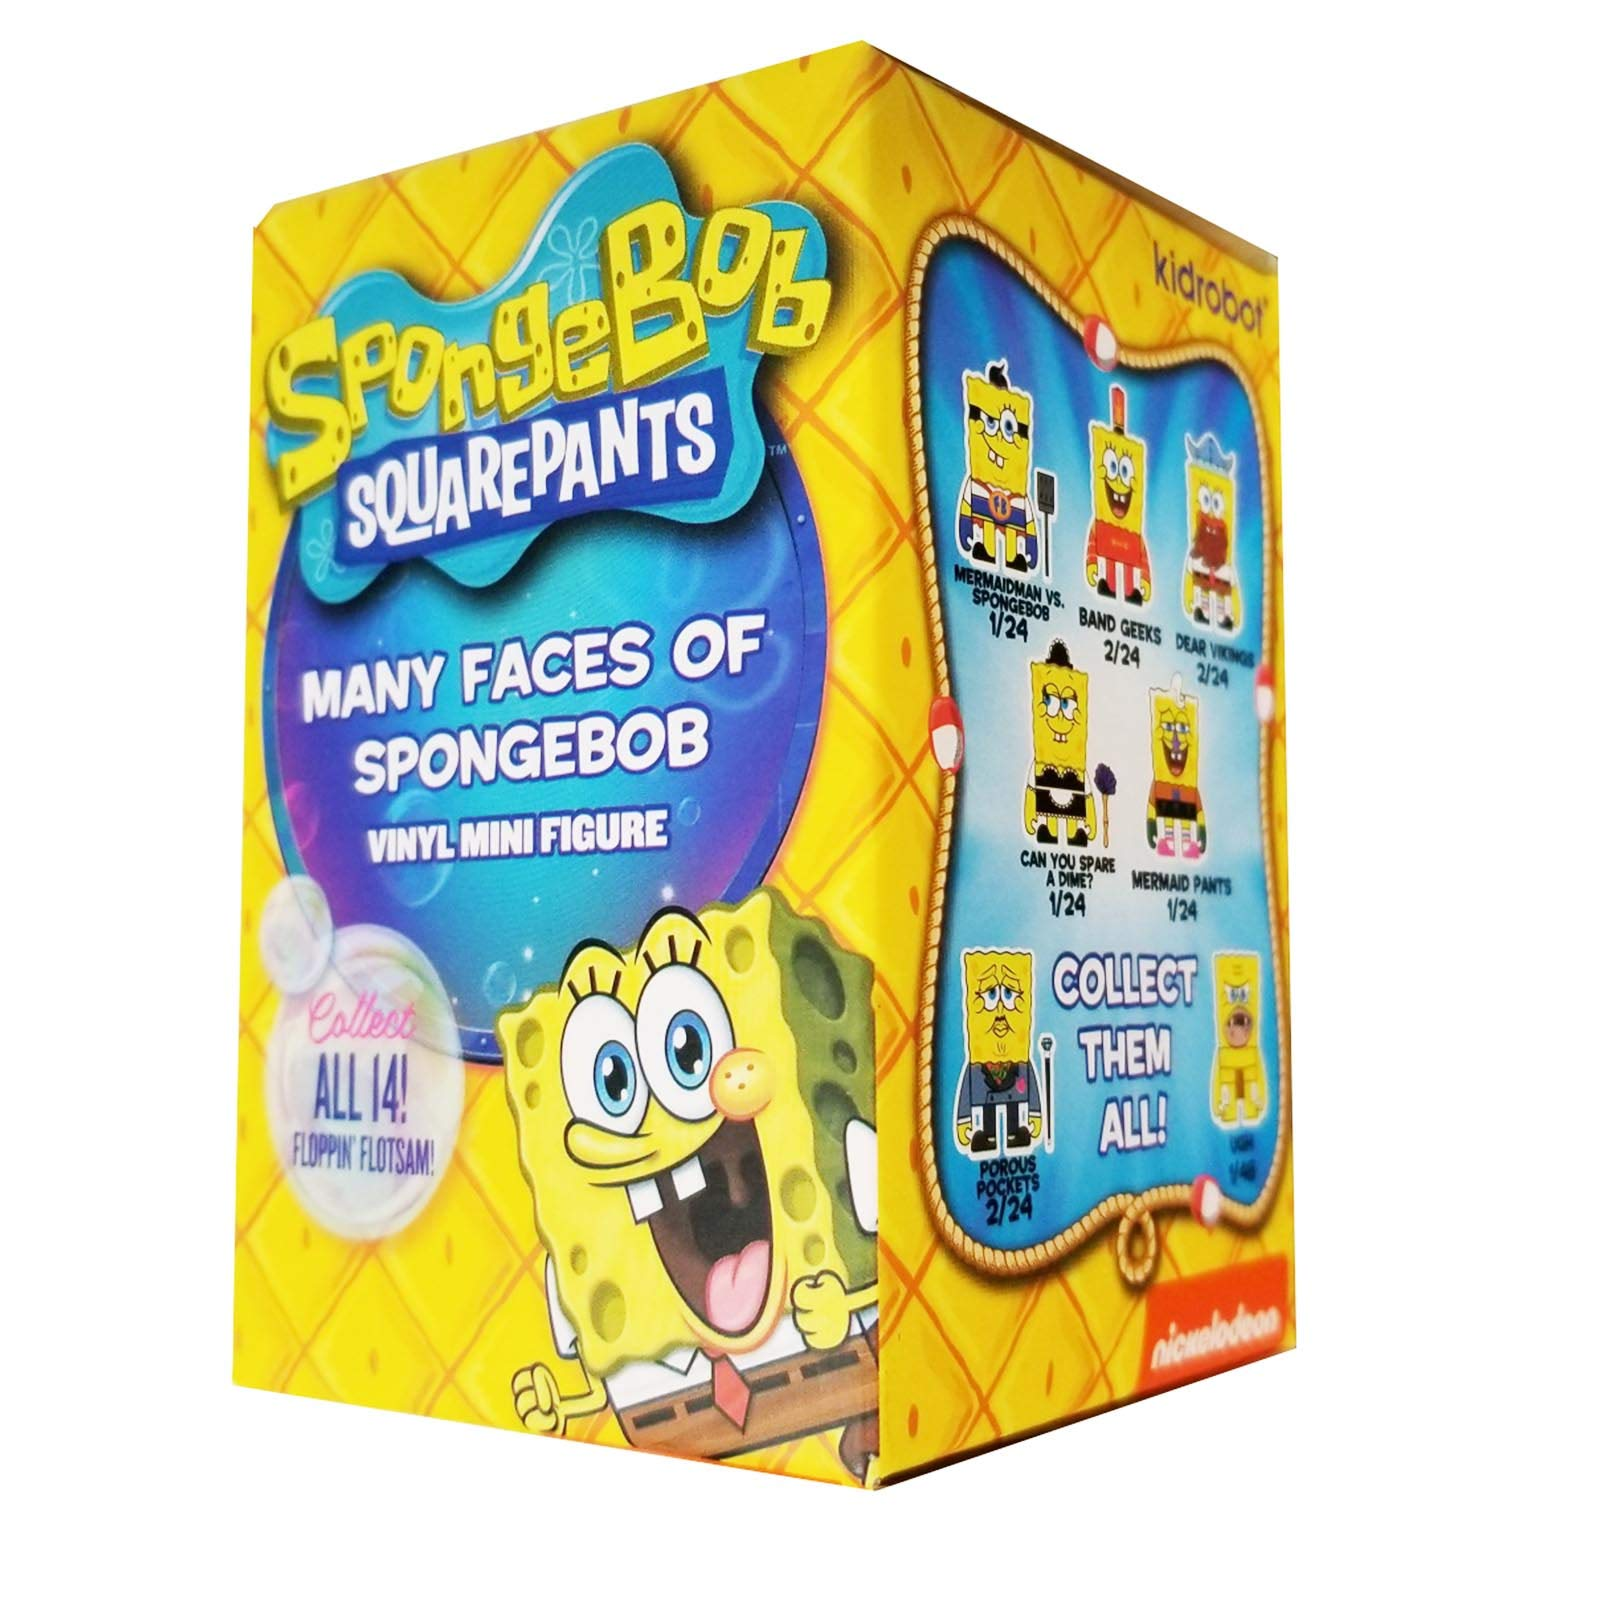 Kidrobot Spongebob Squarepants Many Faces Blind Box Figure